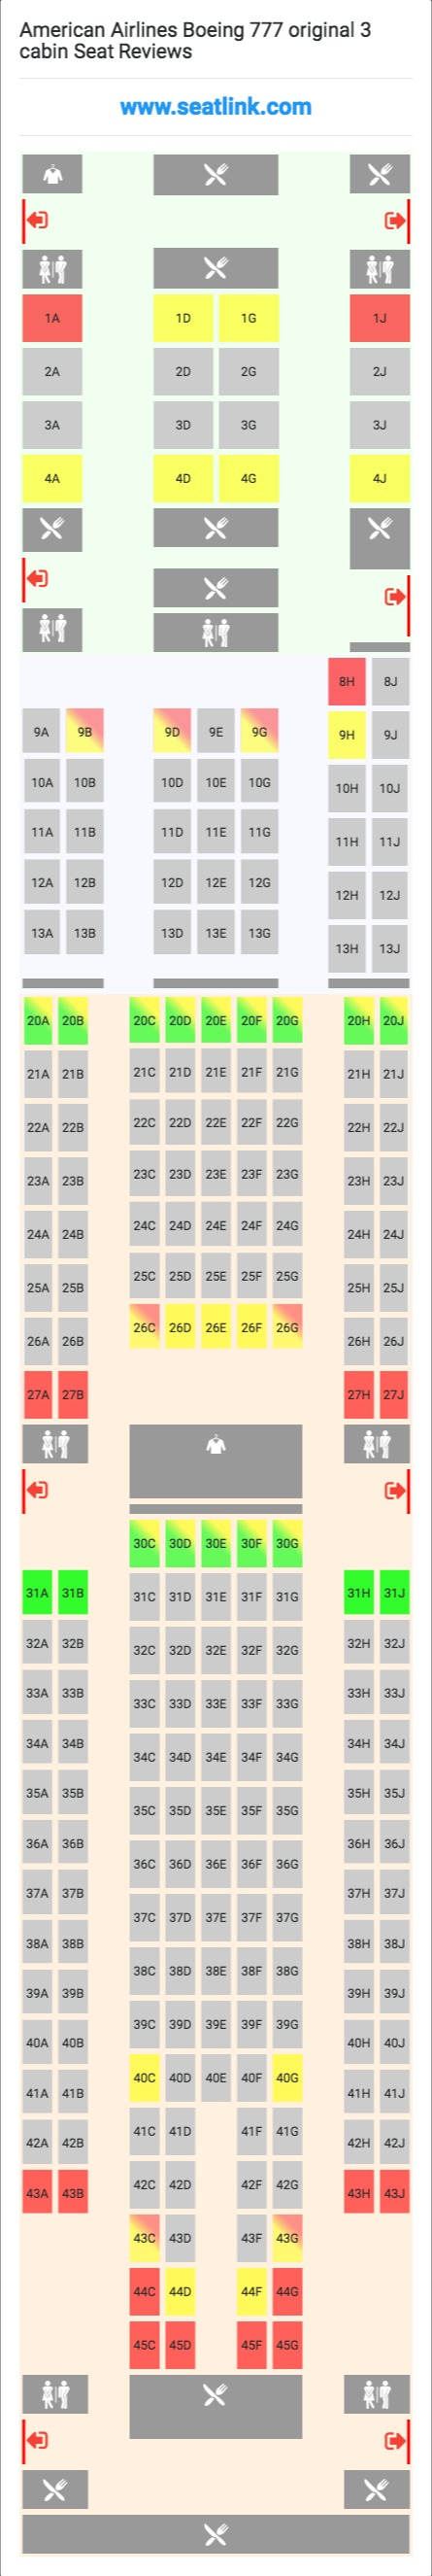 Pin On Airline Seating Charts Cabin Layouts